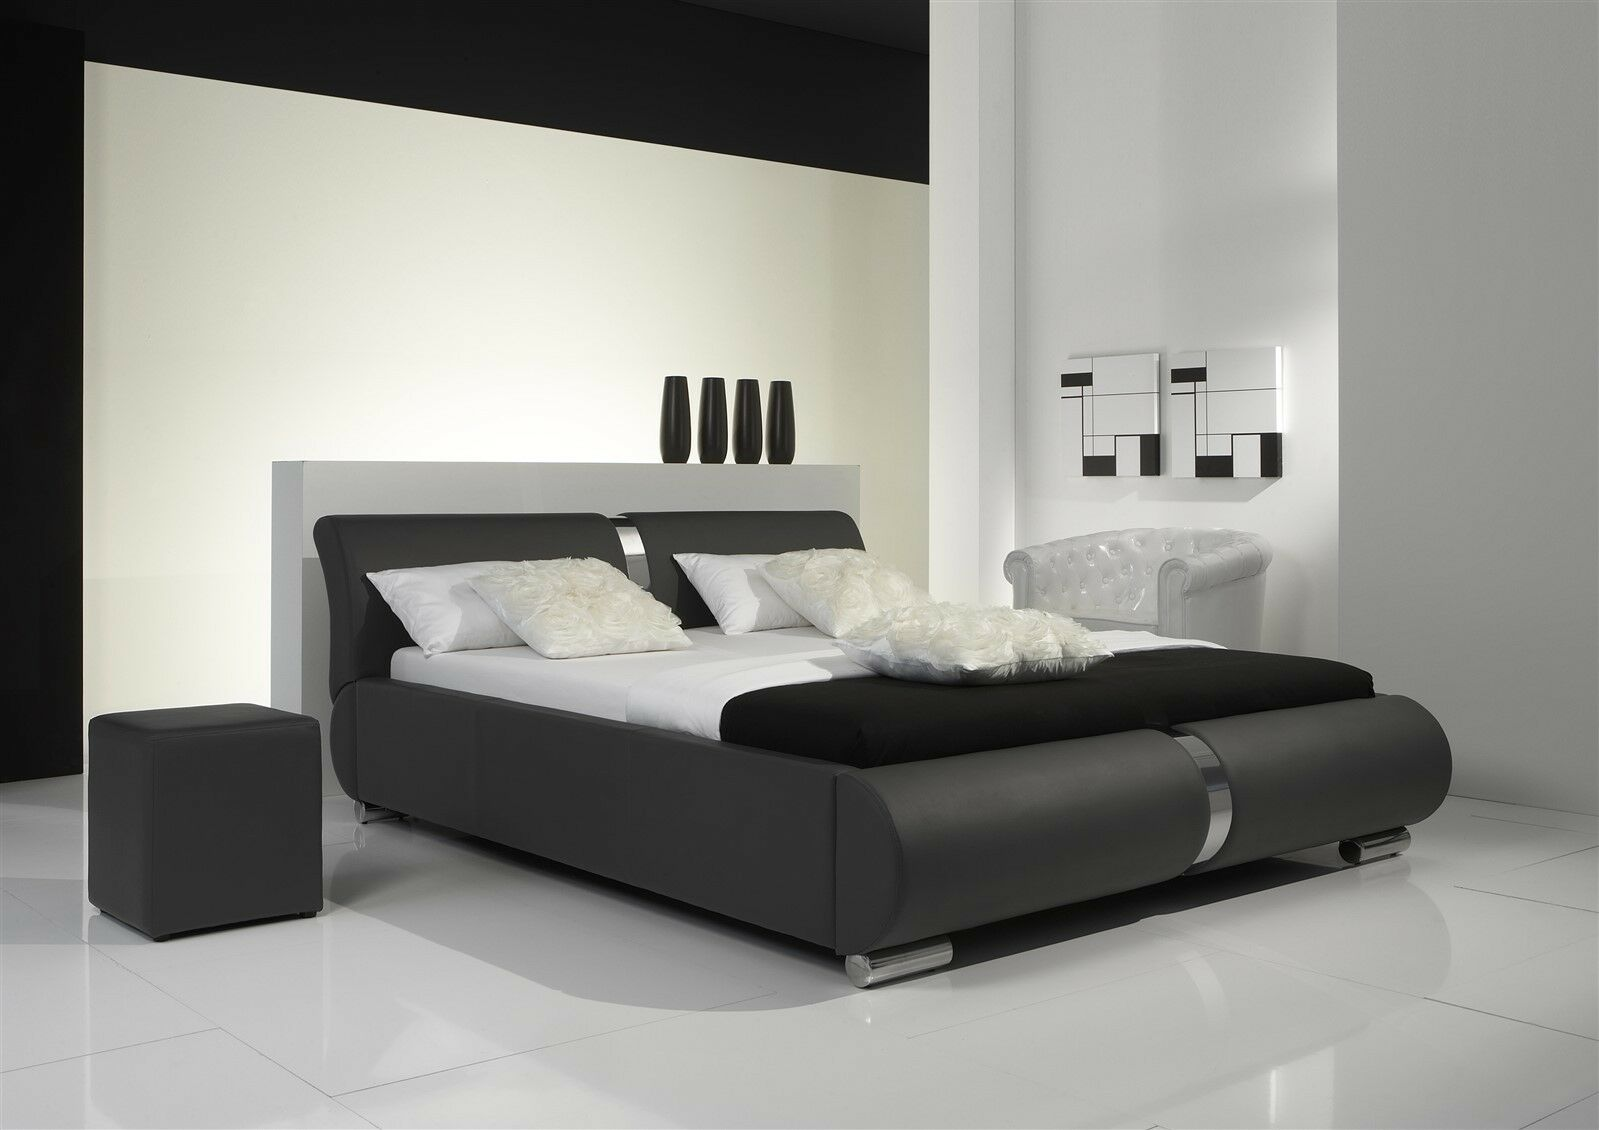 polsterbett bett doppelbett tagesbett dakar 160x200 cm grau eur 789 60 picclick de. Black Bedroom Furniture Sets. Home Design Ideas